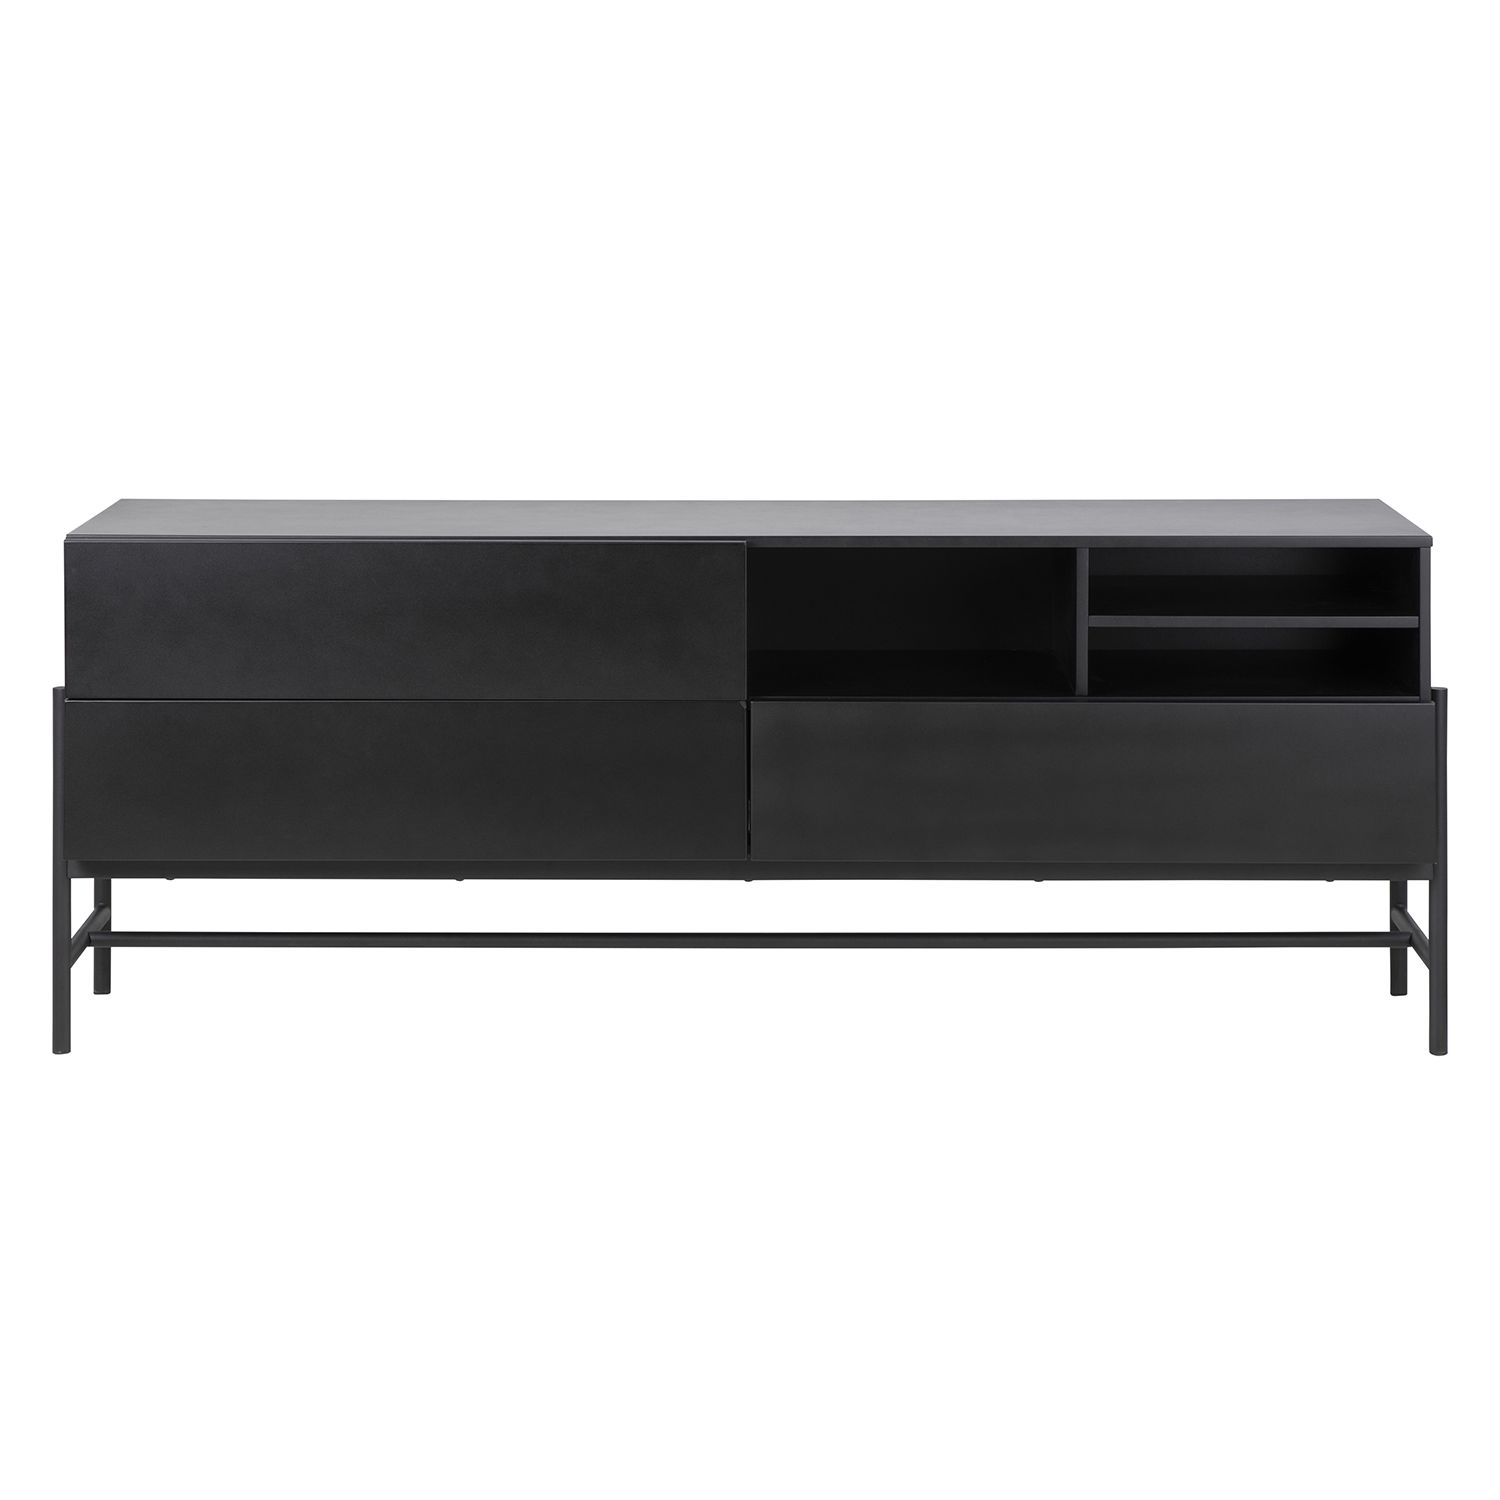 Norse dressoir Interstil zwart